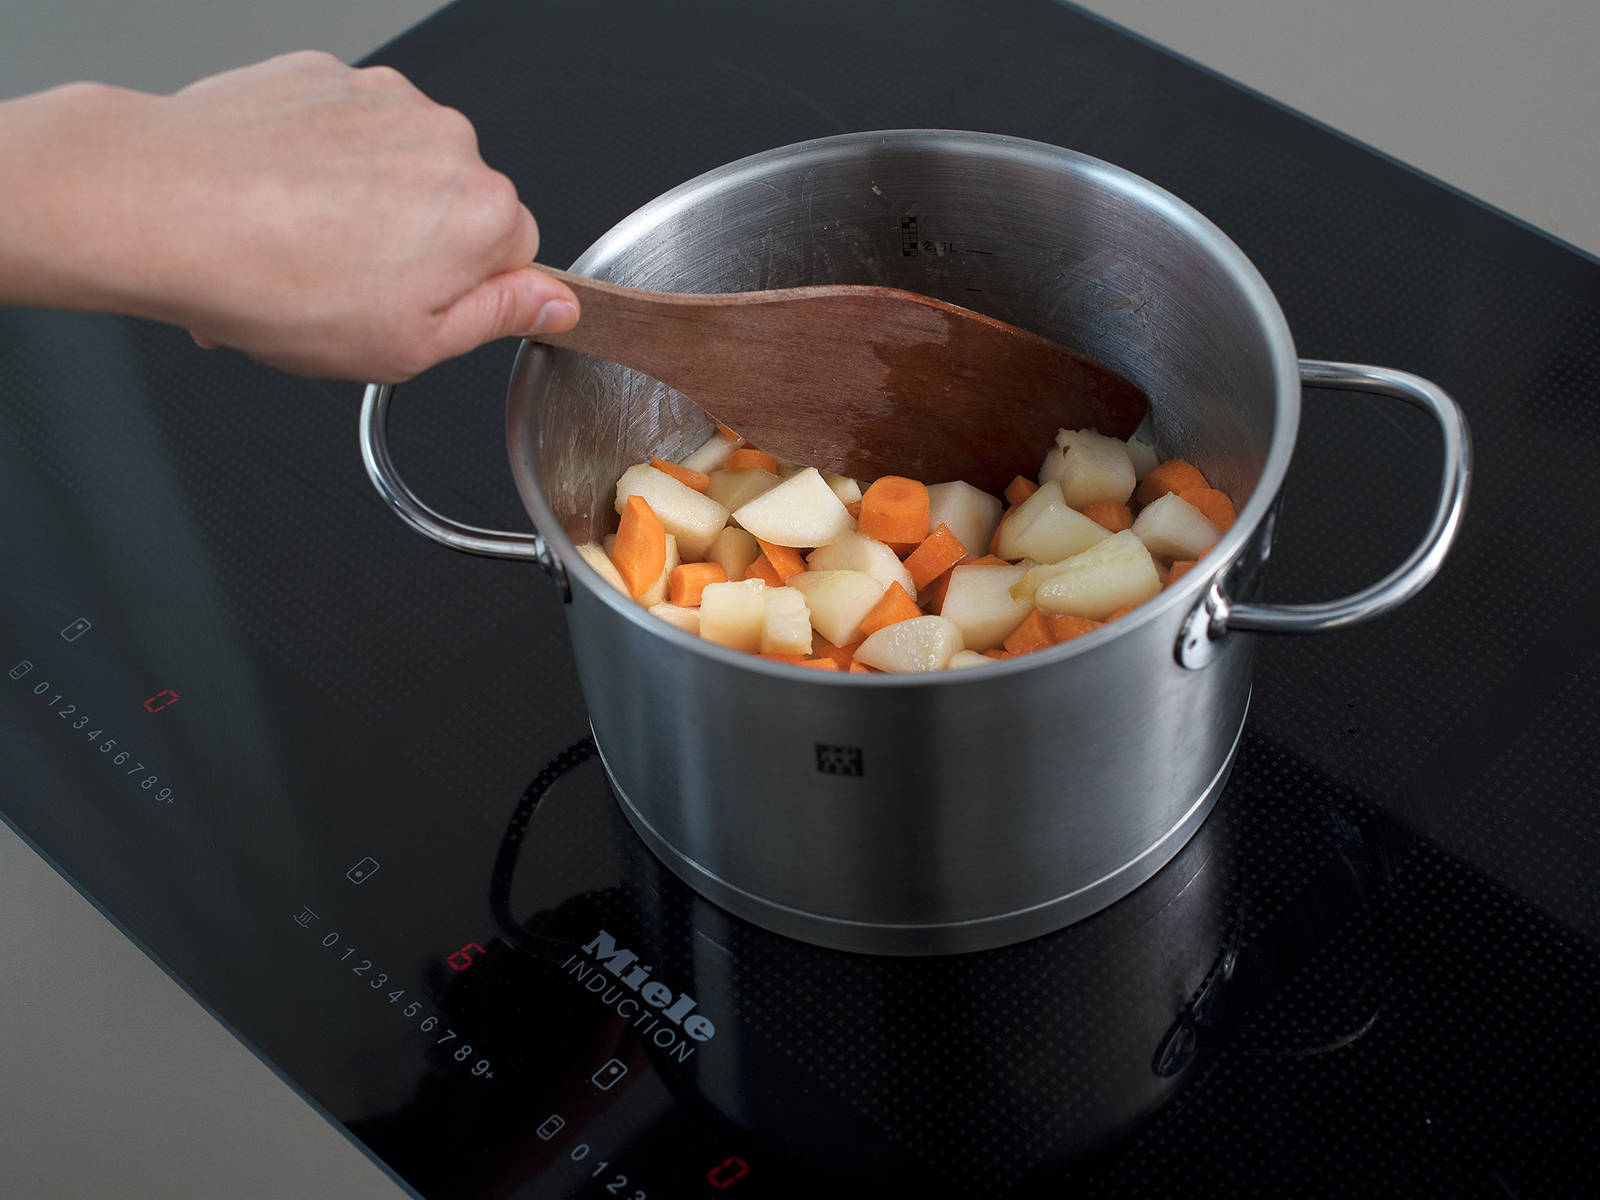 Add butter to saucepan. As soon as it's melted, add sugar and stir until fully dissolved. Add pear pieces to saucepan and stir until caramelized. Add carrot dices, stir, and let cook for approx. 5 min.